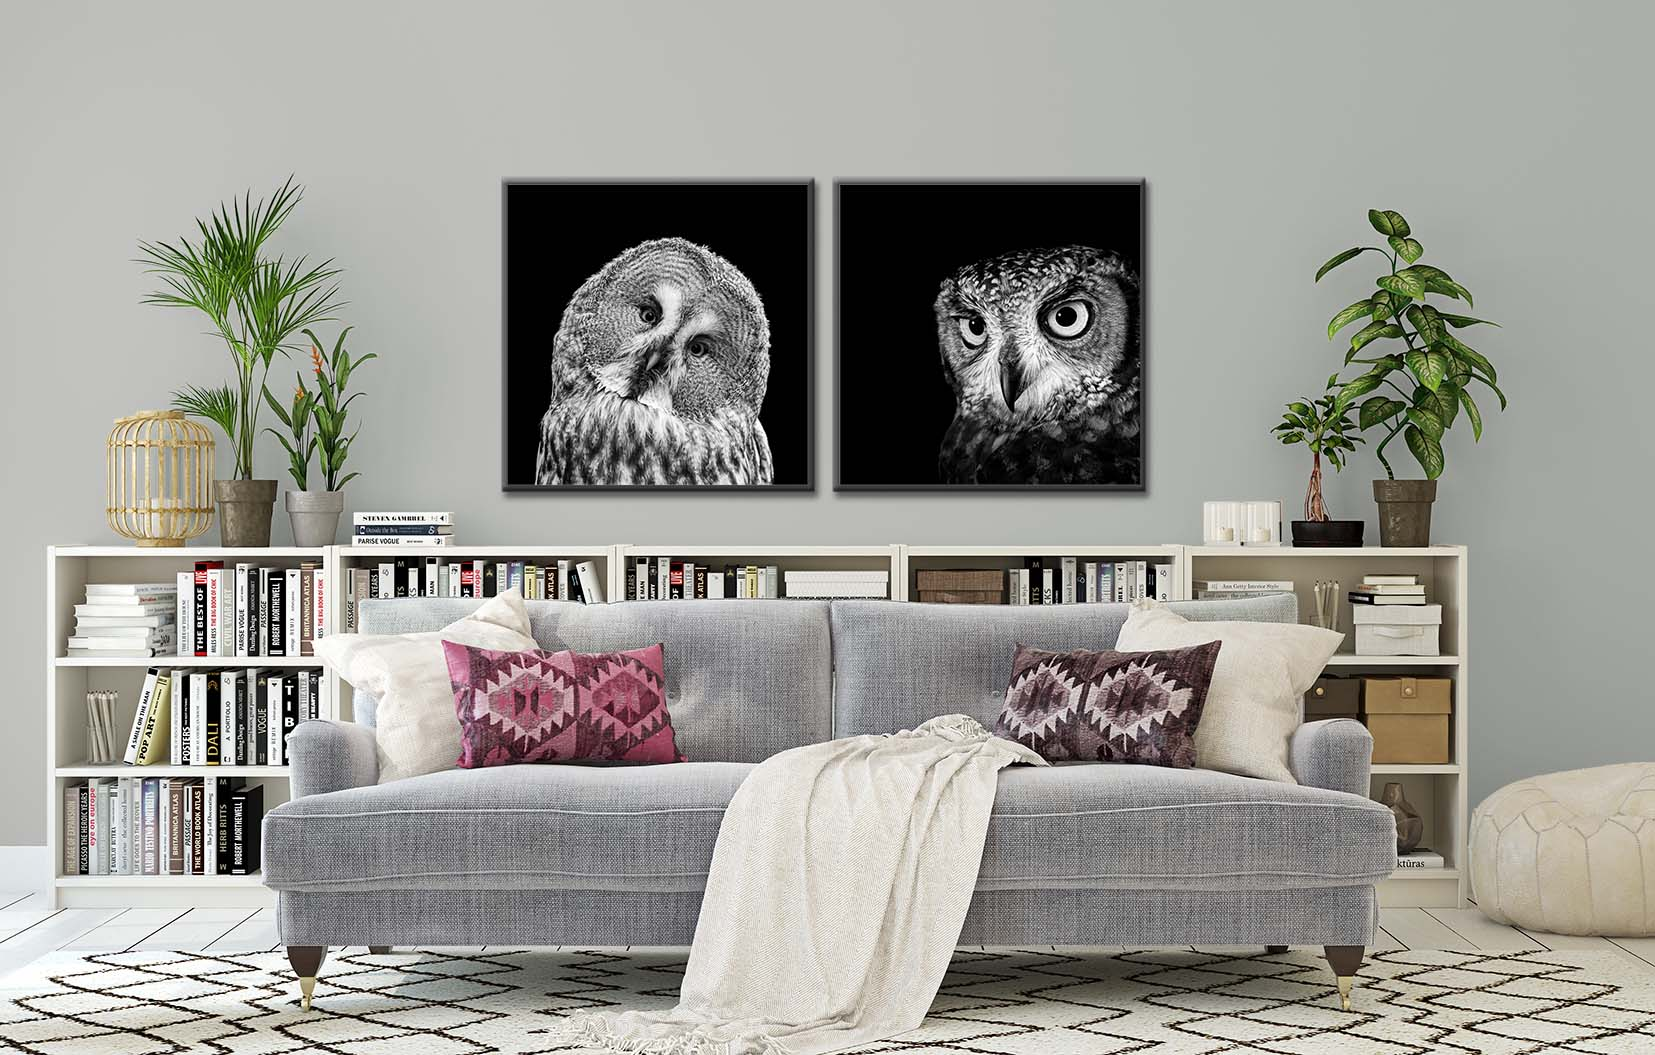 Black and white photographs of two owls, framed and on the wall. Limited edition prints of birds by fine art photographer Paul Coghlin FBIPP.